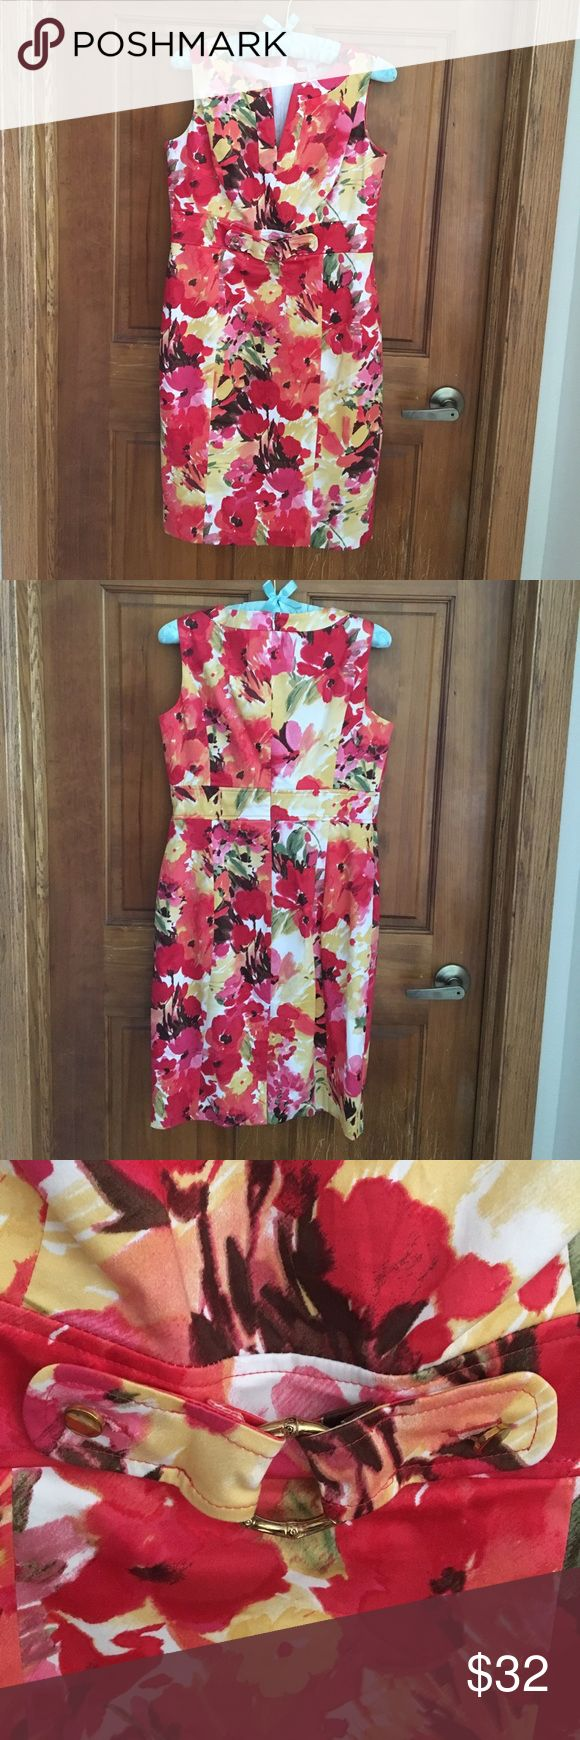 Charter Club Petite dress Floral pattern. Very lightly worn. Excellent condition. Non smoking home. Charter Club Dresses